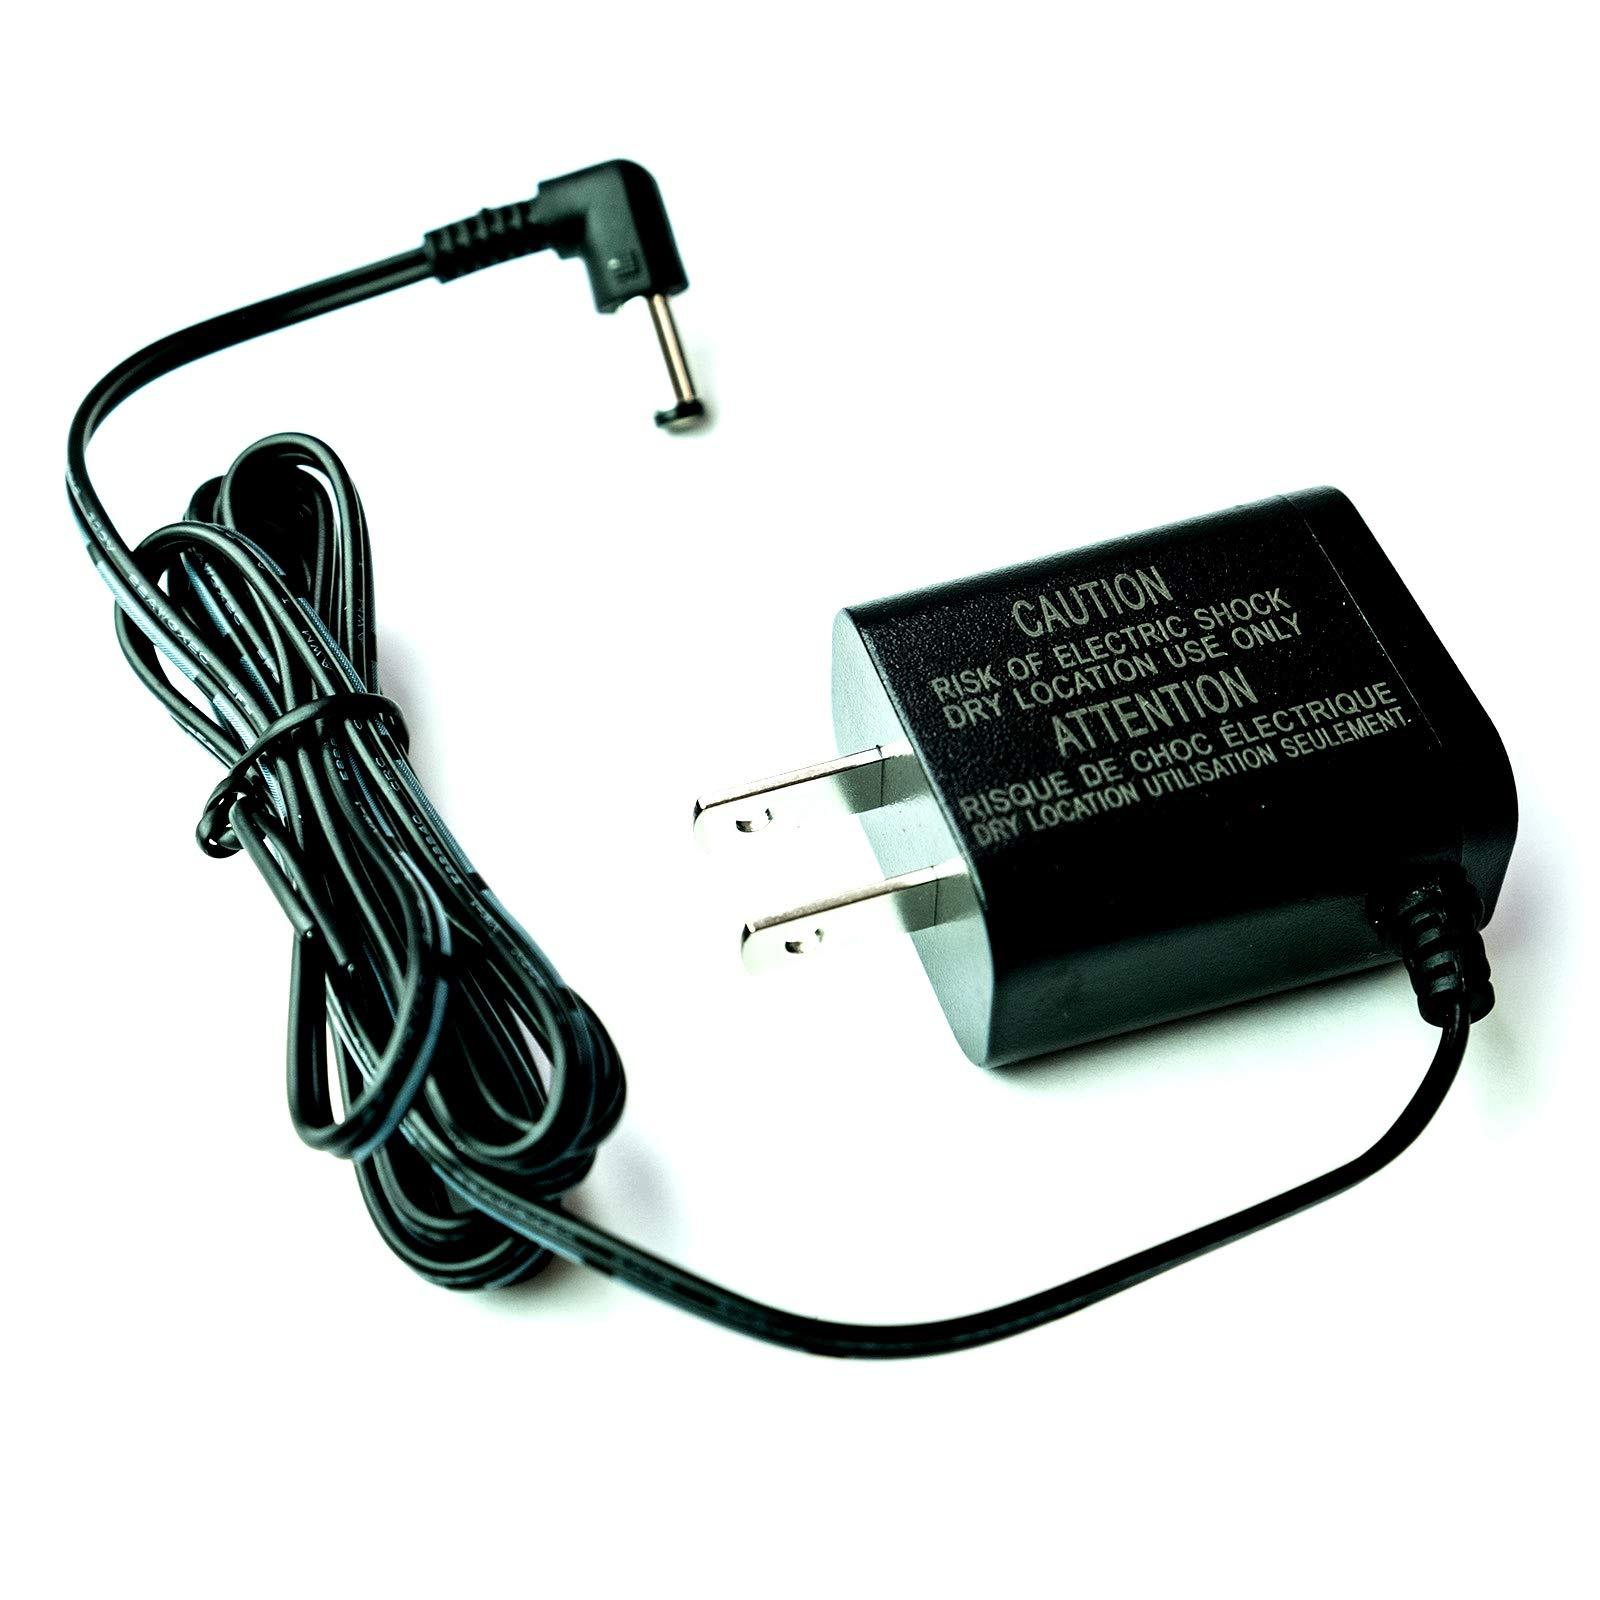 MyVolts 9V Power Supply Adaptor Compatible with Dymo LetraTag S0883990 100H Label Printer - US Plug by MyVolts (Image #5)